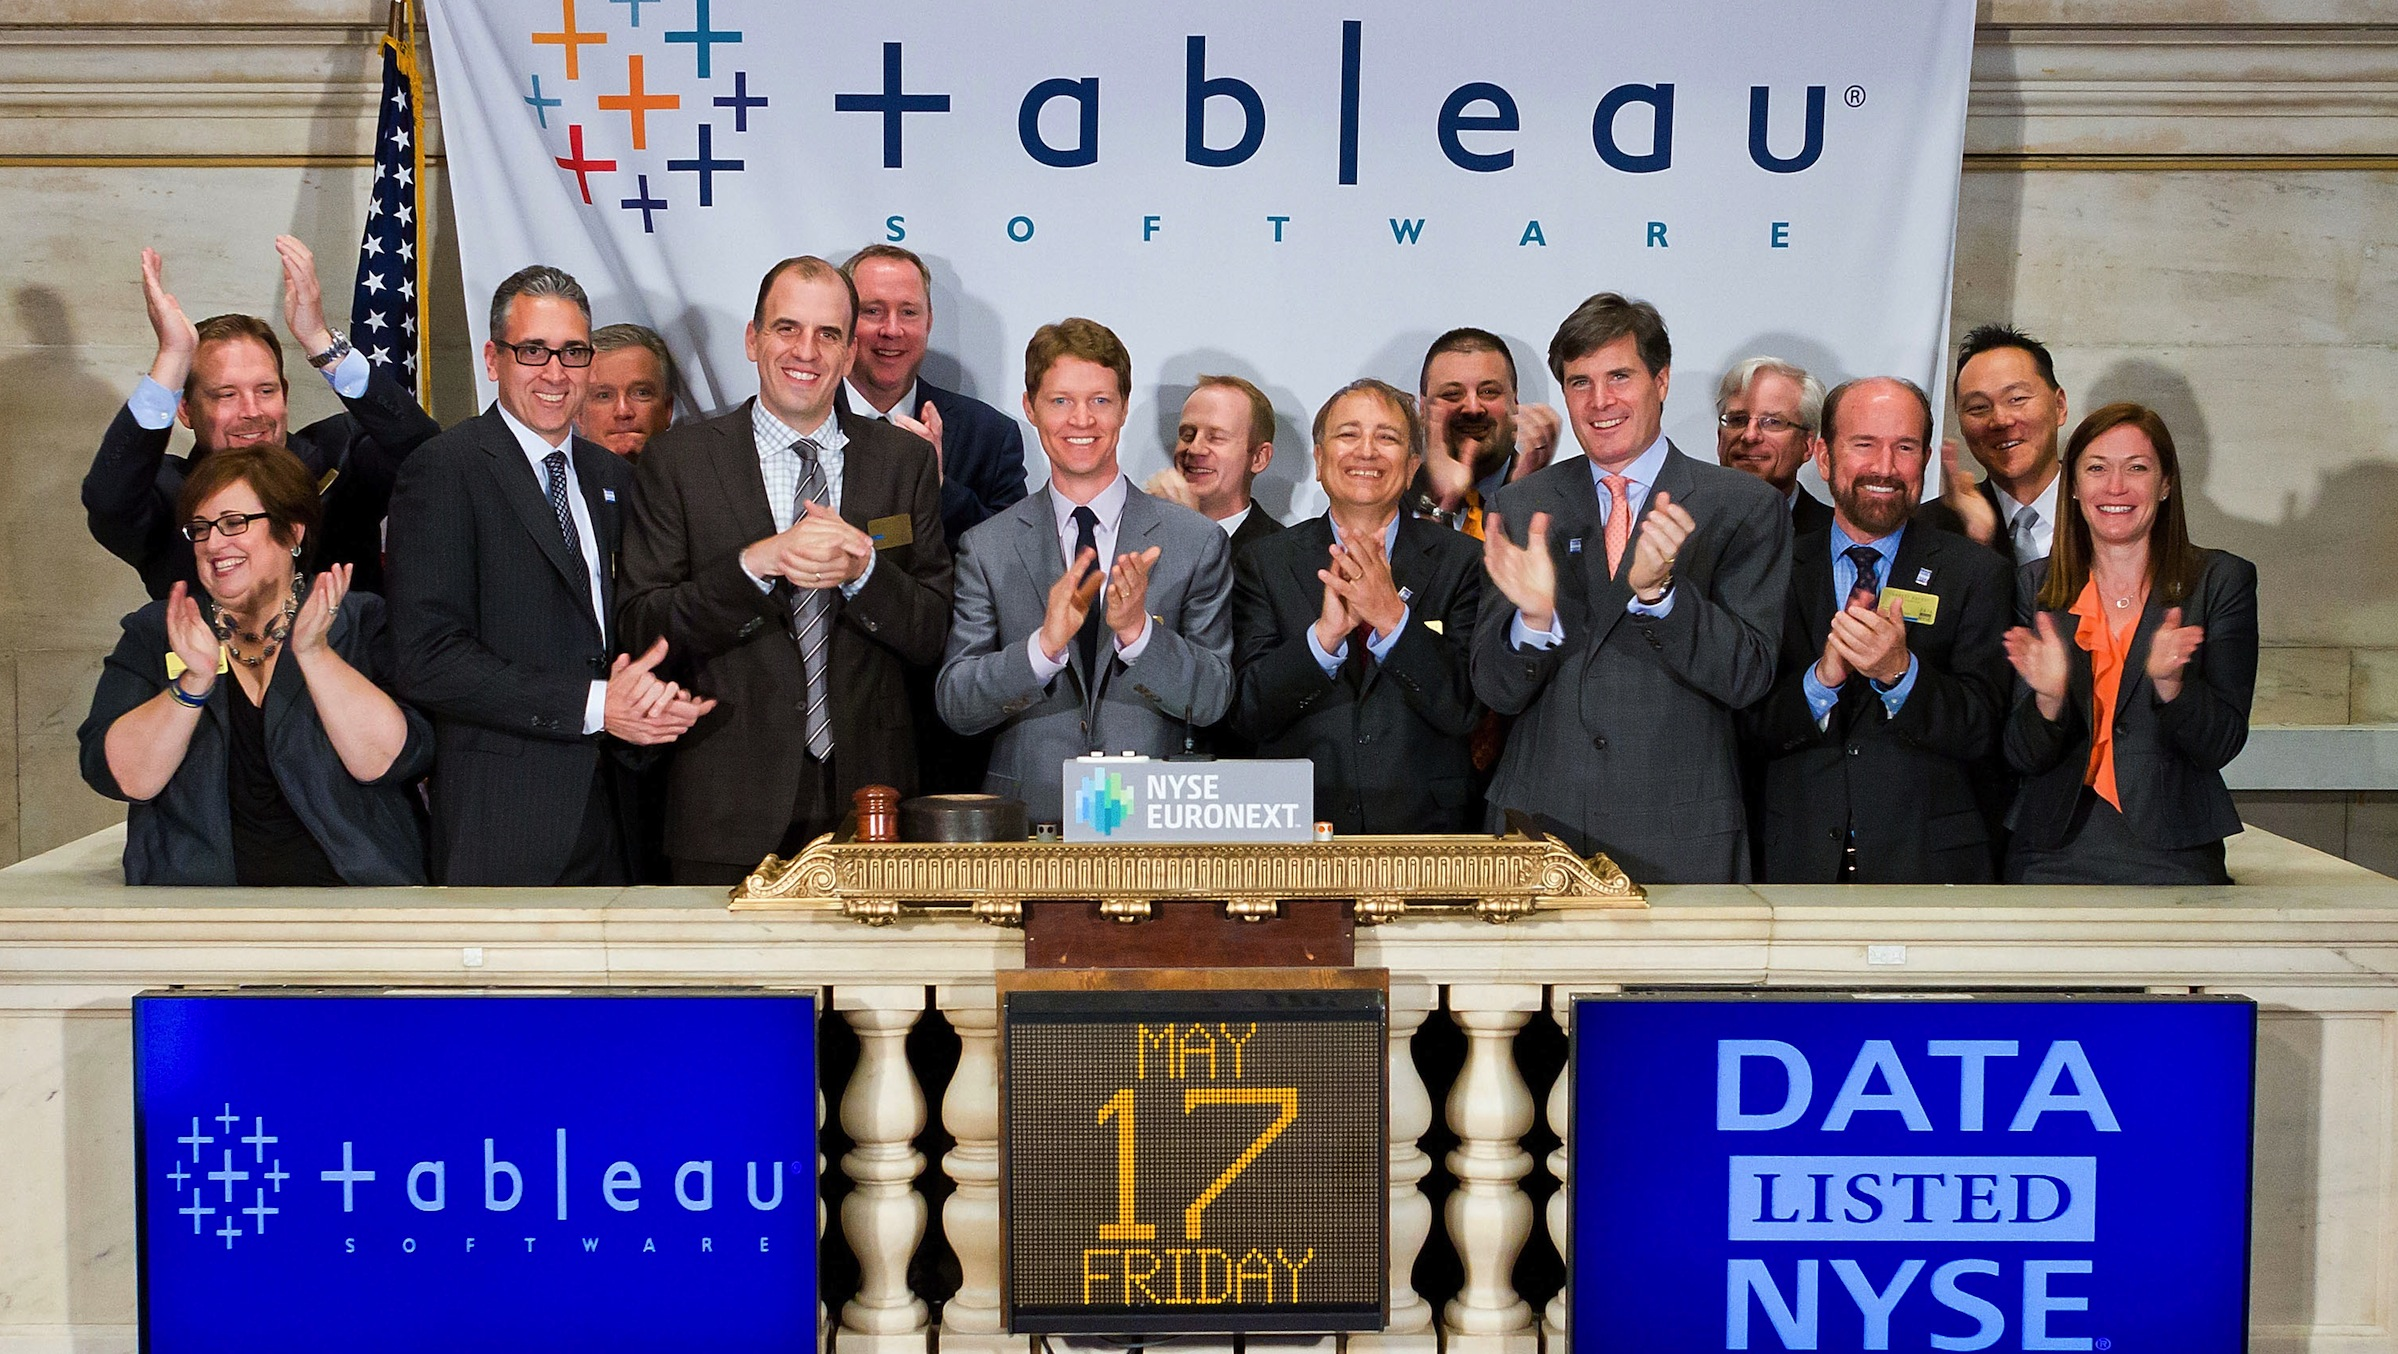 NEW YORK, NY – MAY 17:   CEO and Co-founder Christian Chabot of Tableau Software celebrates their IPO and rings the opening bell at the New York Stock Exchange on May 17, 2013 in New York City.  (Photo by Ben Hider/NYSE Euronext)